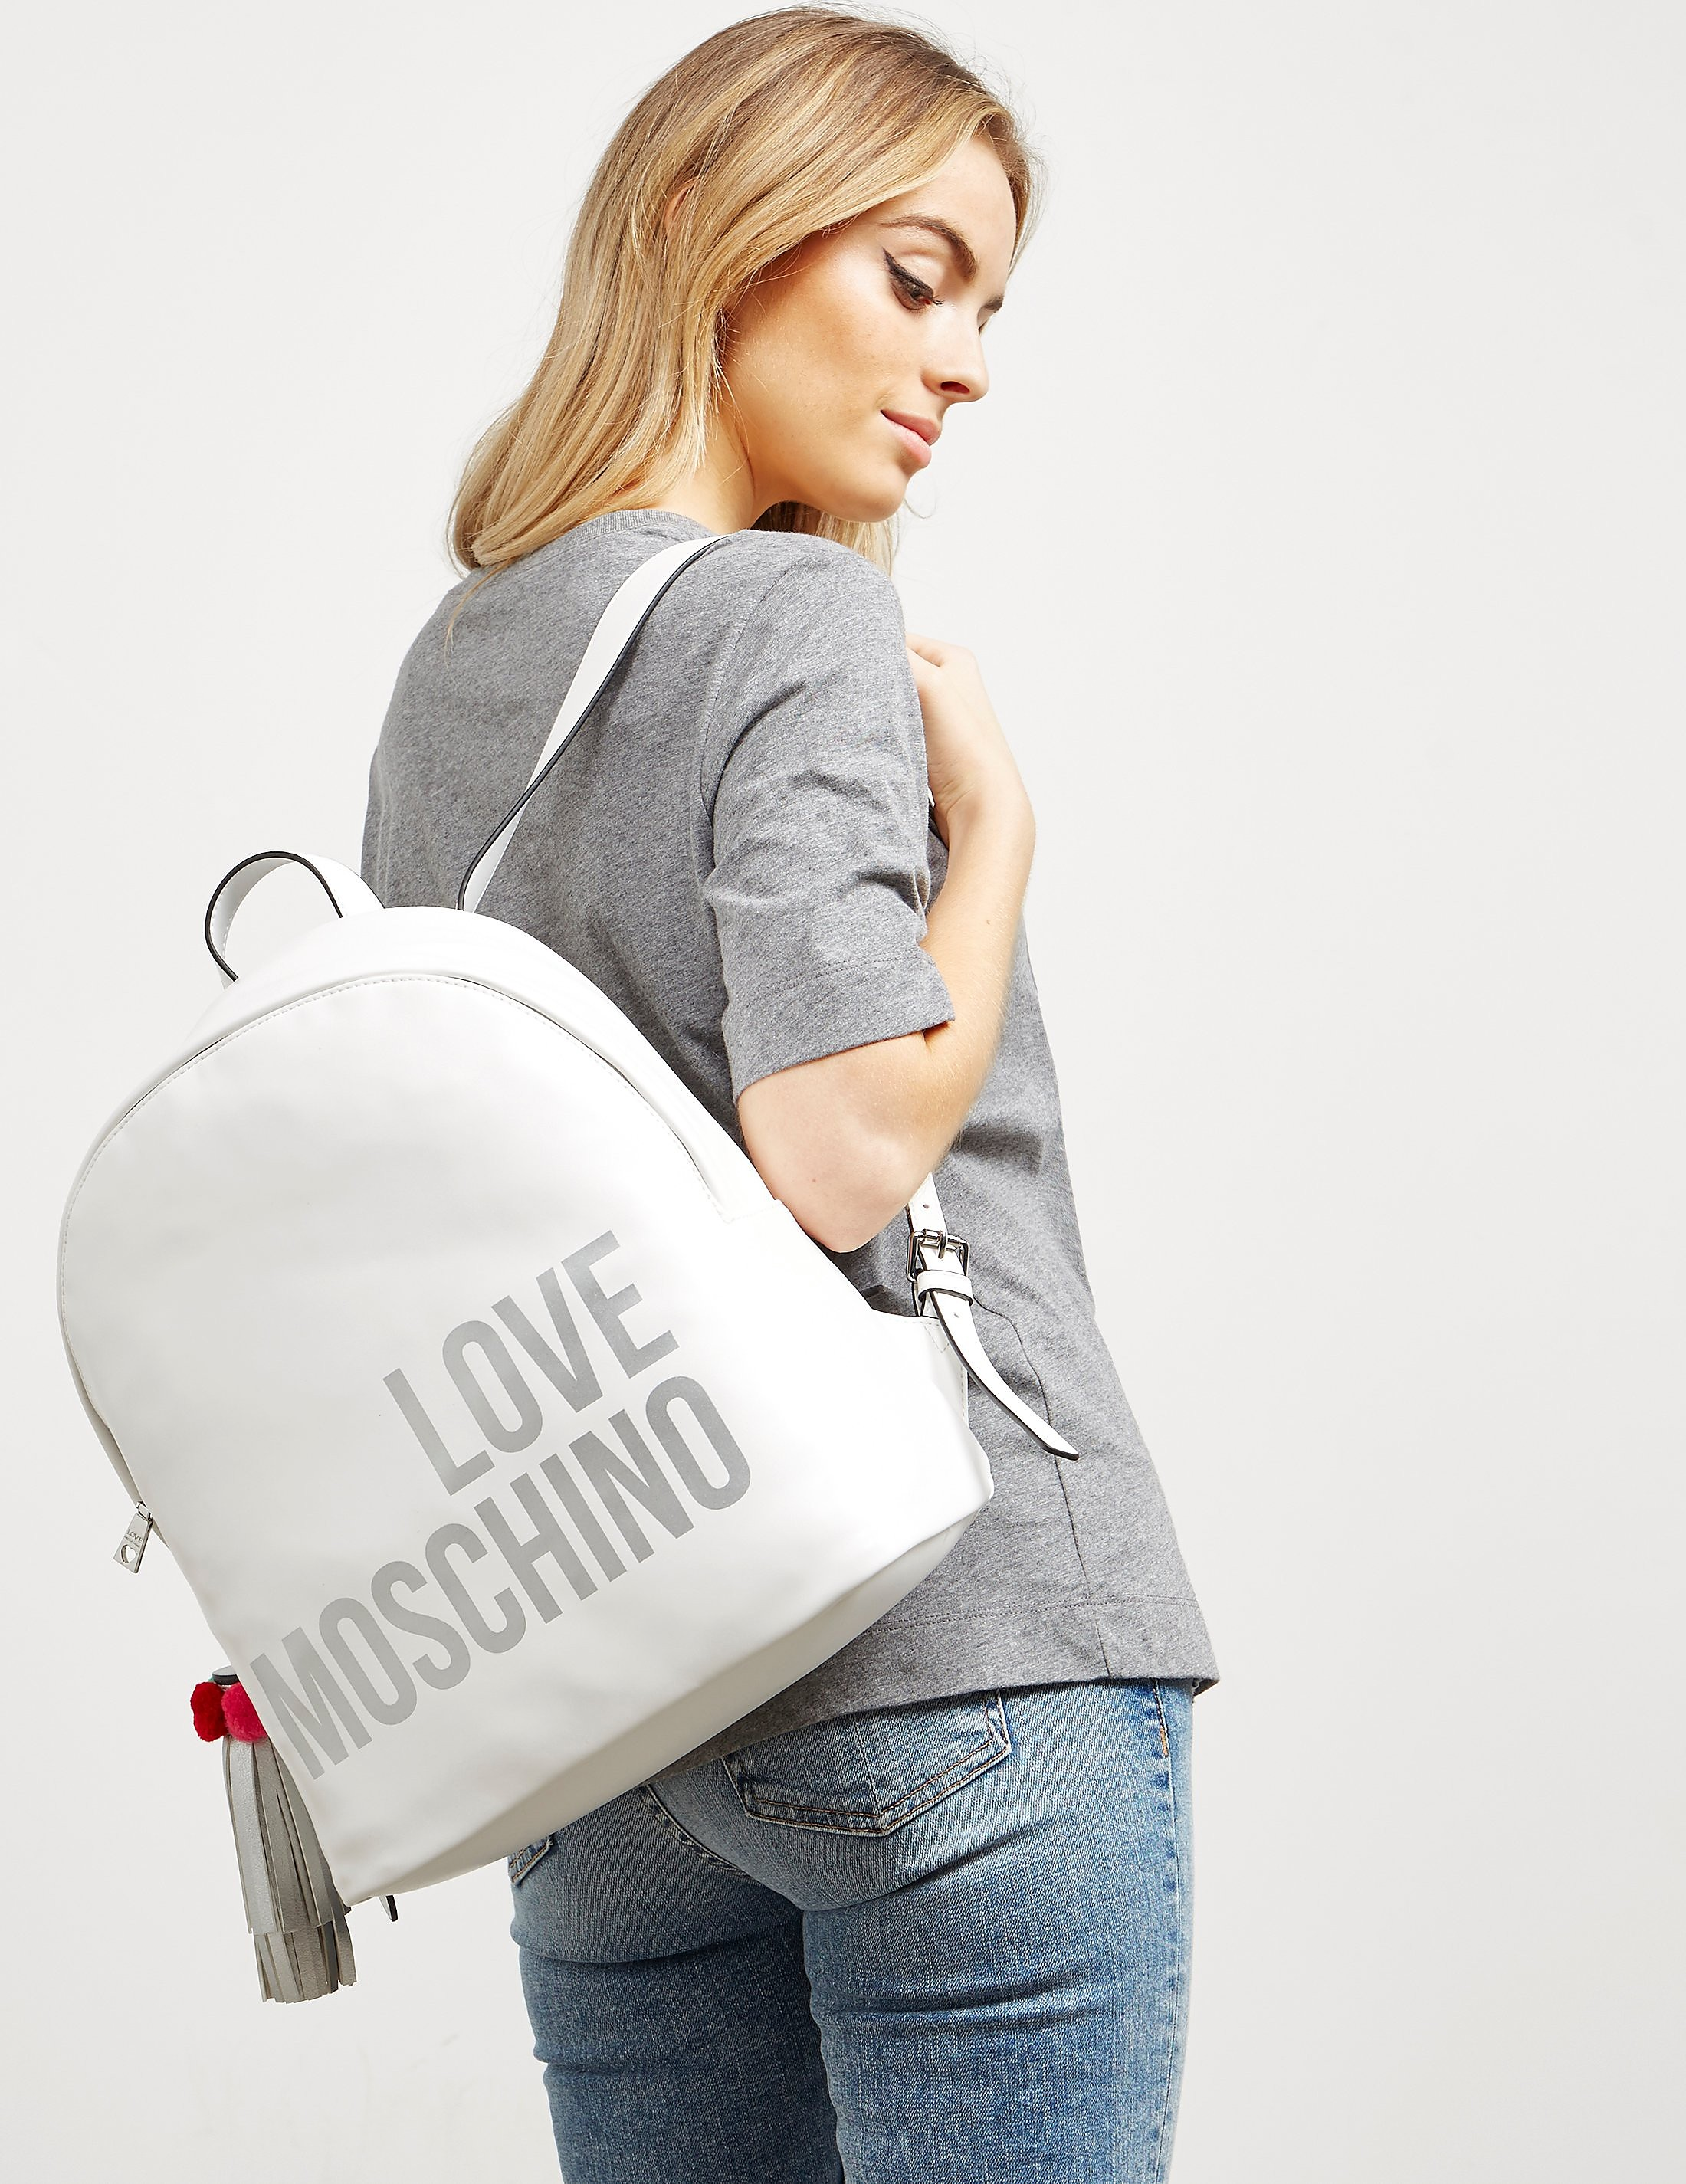 Love Moschino Tassle Backpack - Online Exclusive